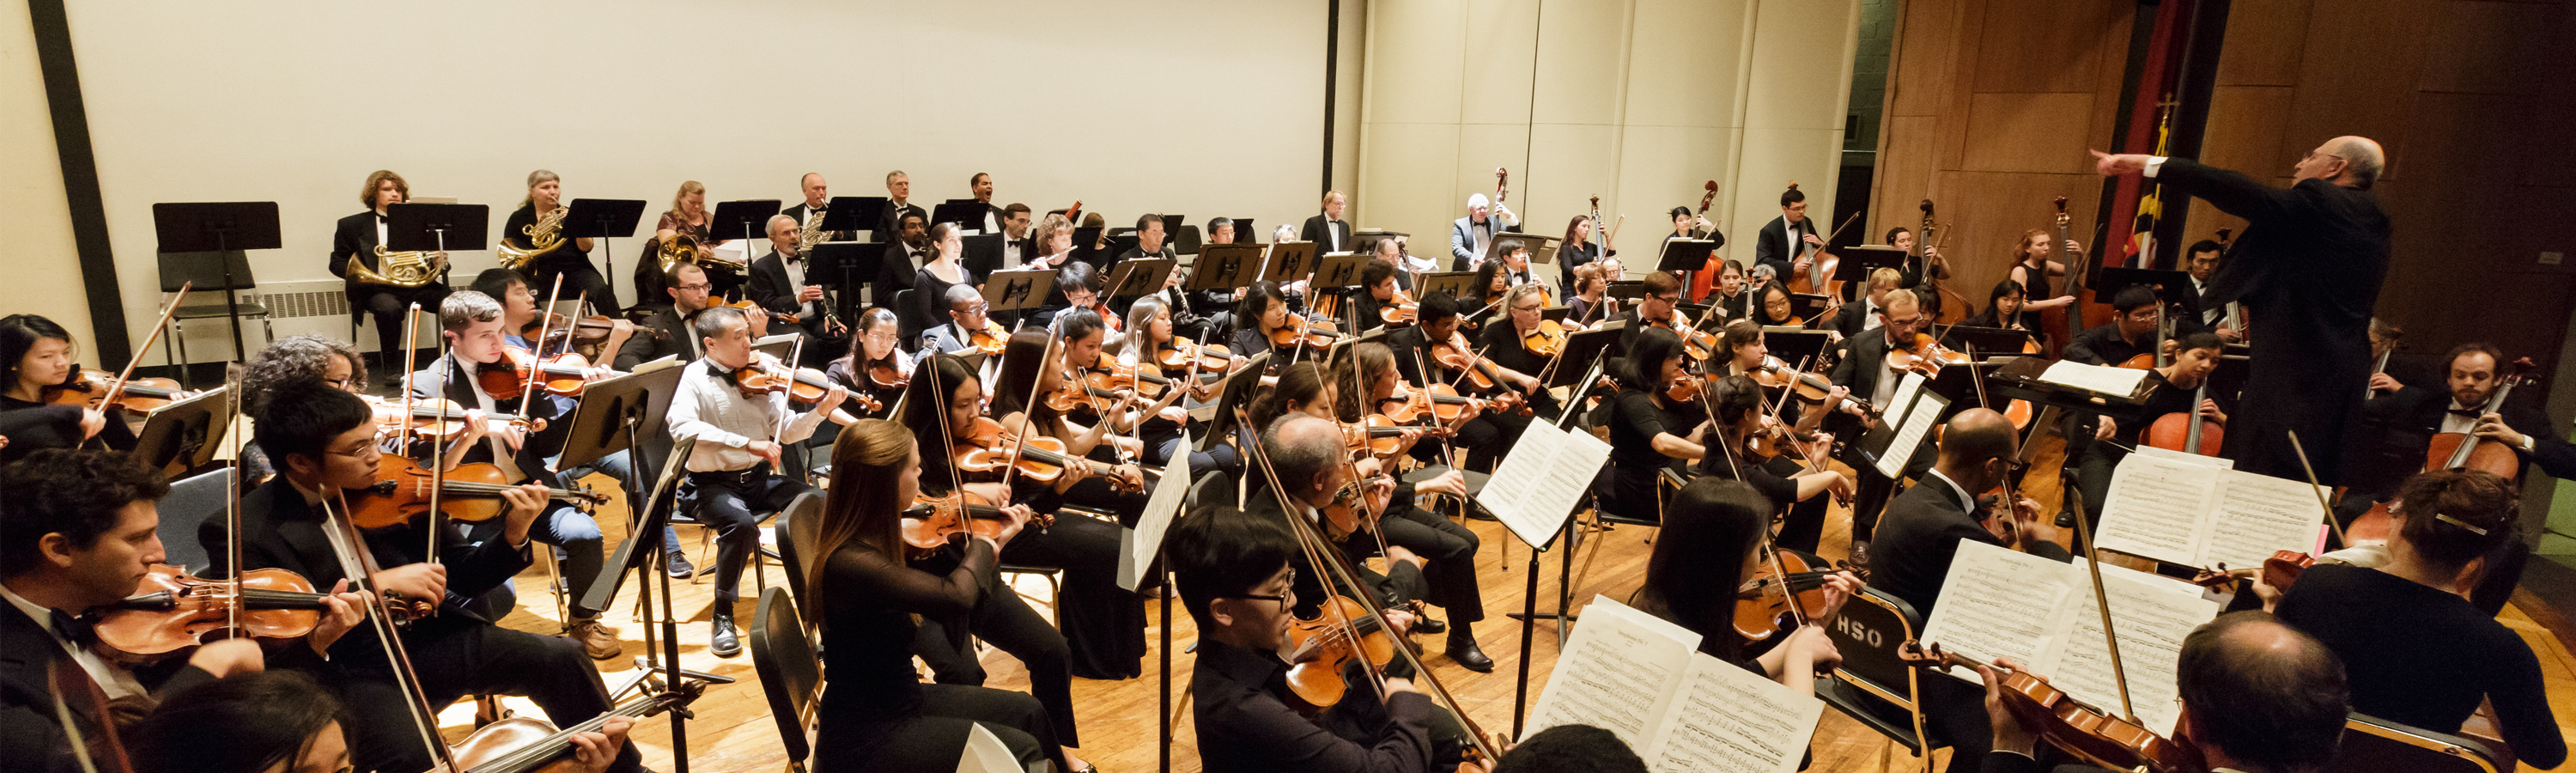 Hopkins Symphony Orchestra Evenings Part II - Symphonie Fantastique: Pipe Dreams and Obsessions header image